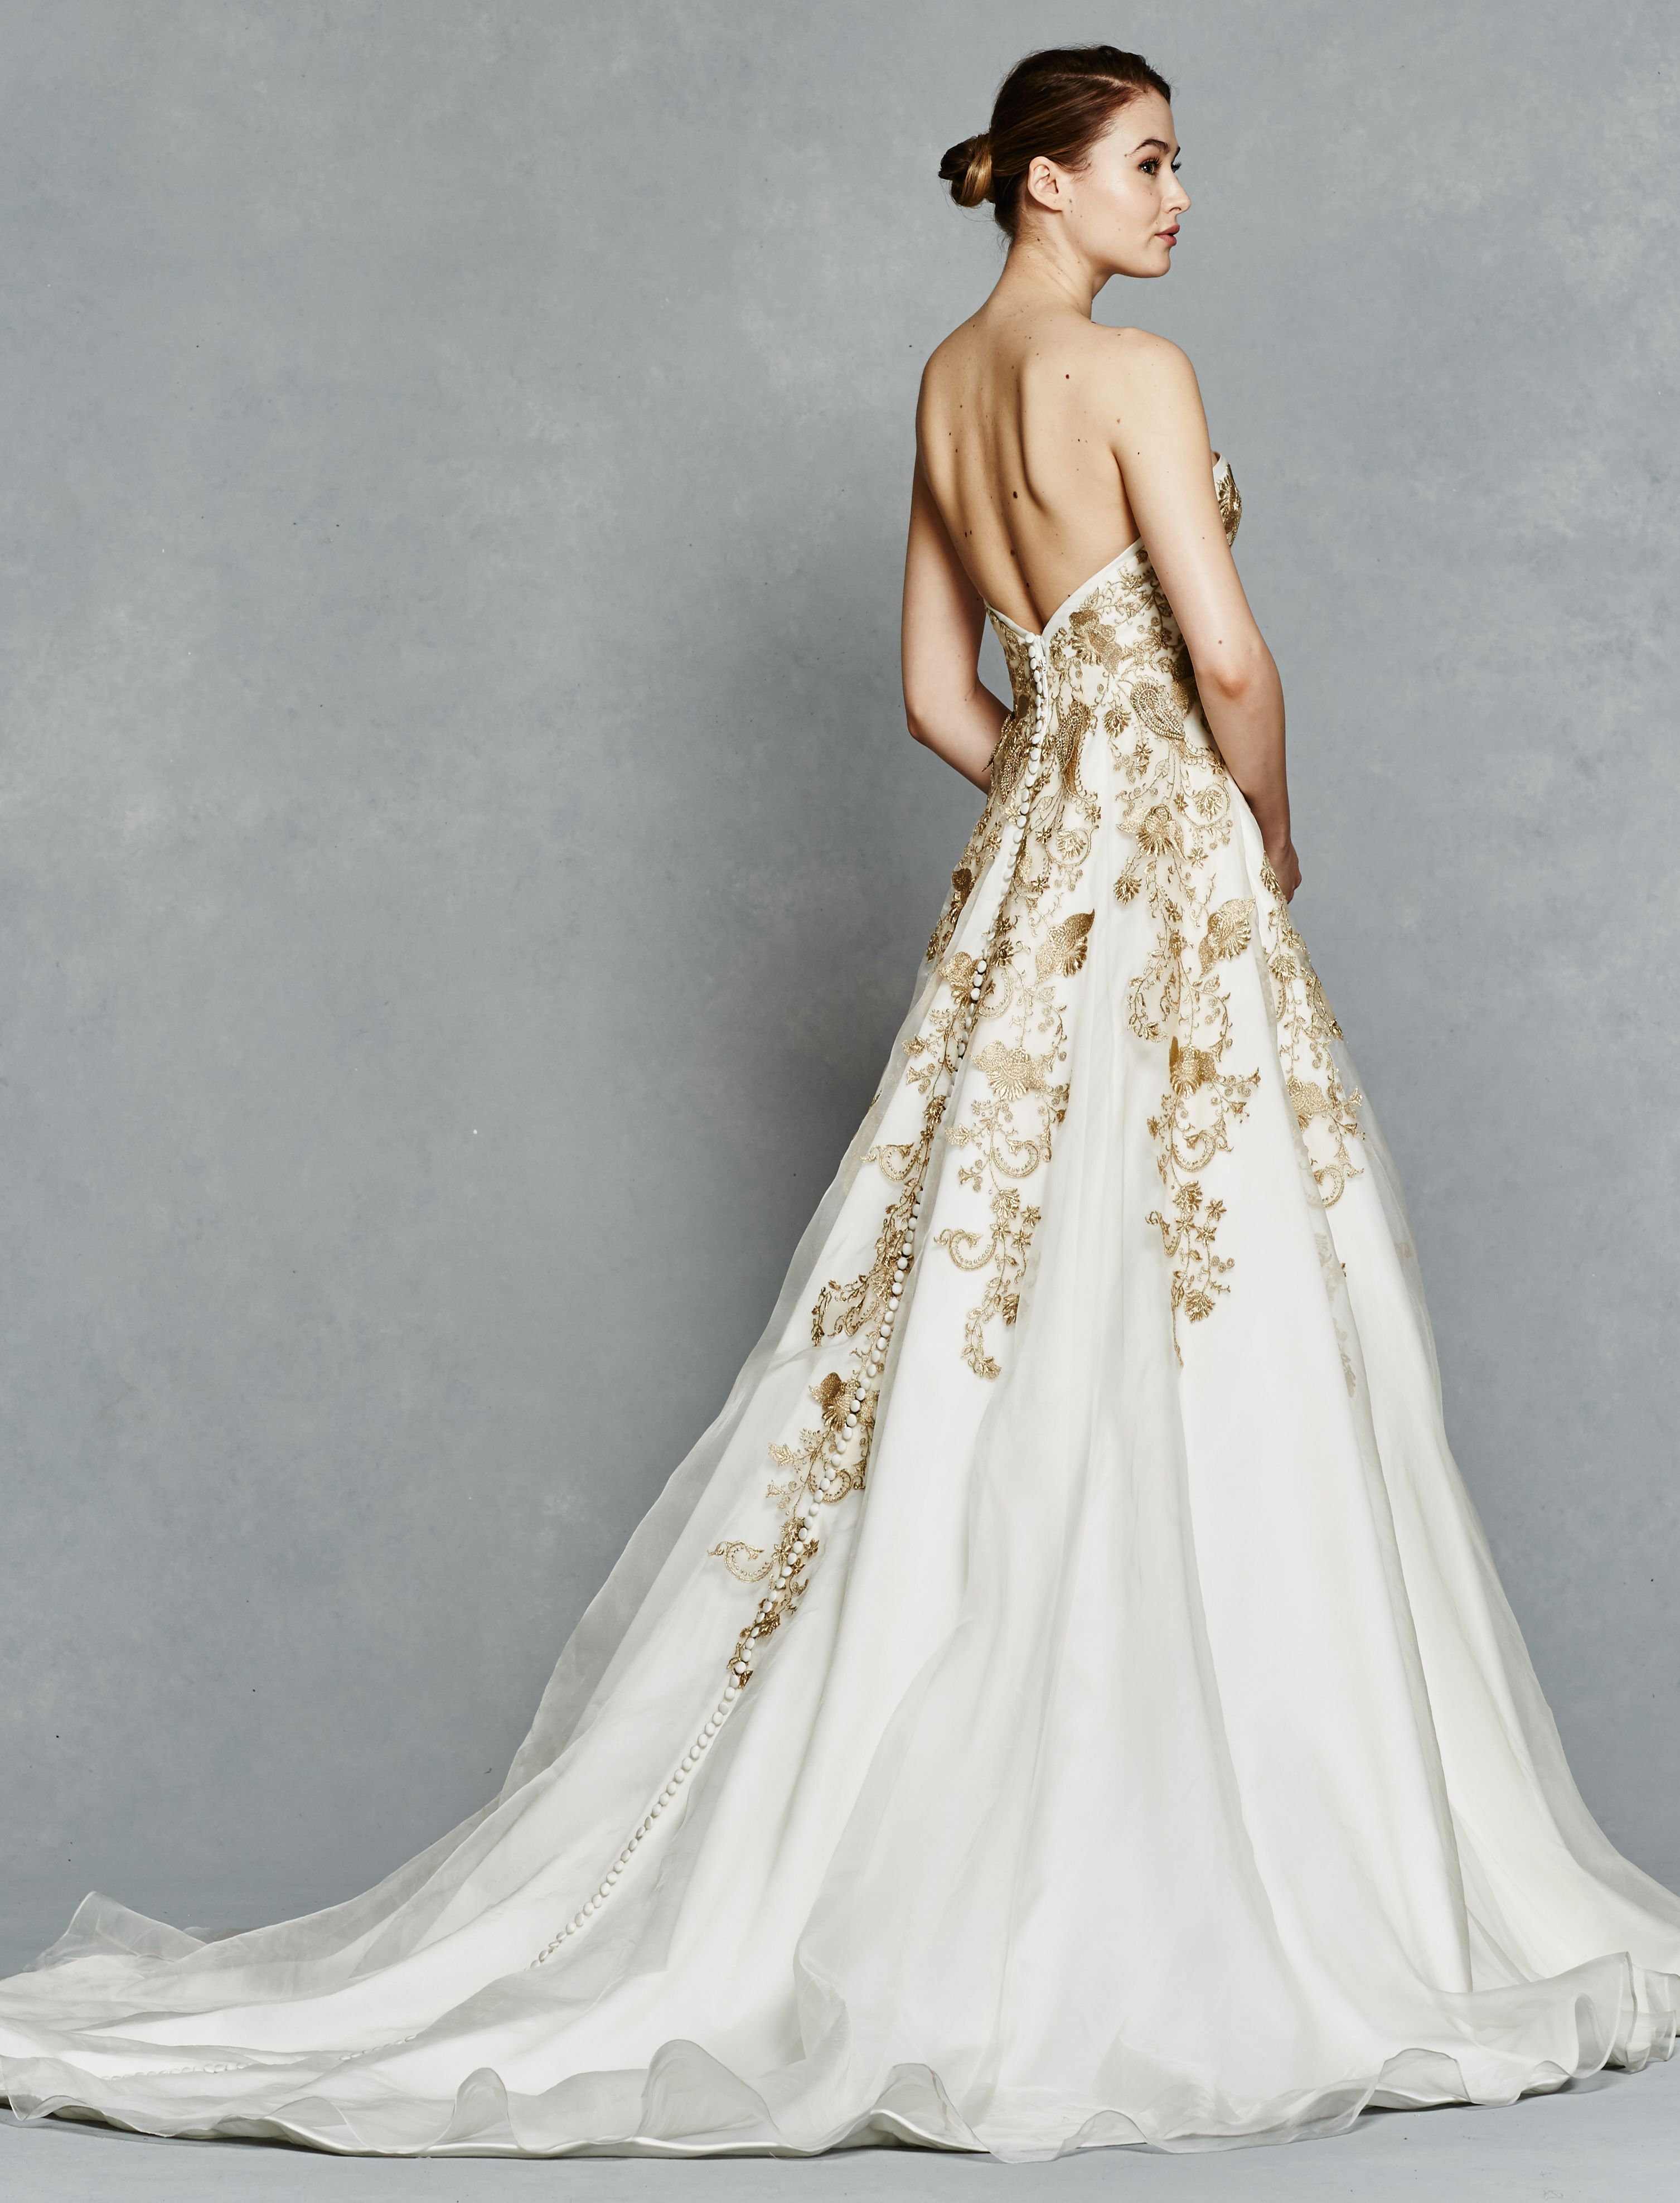 4676467ff Gold lace wedding dress with metallic embellishments (also available in  Ivory!) | '